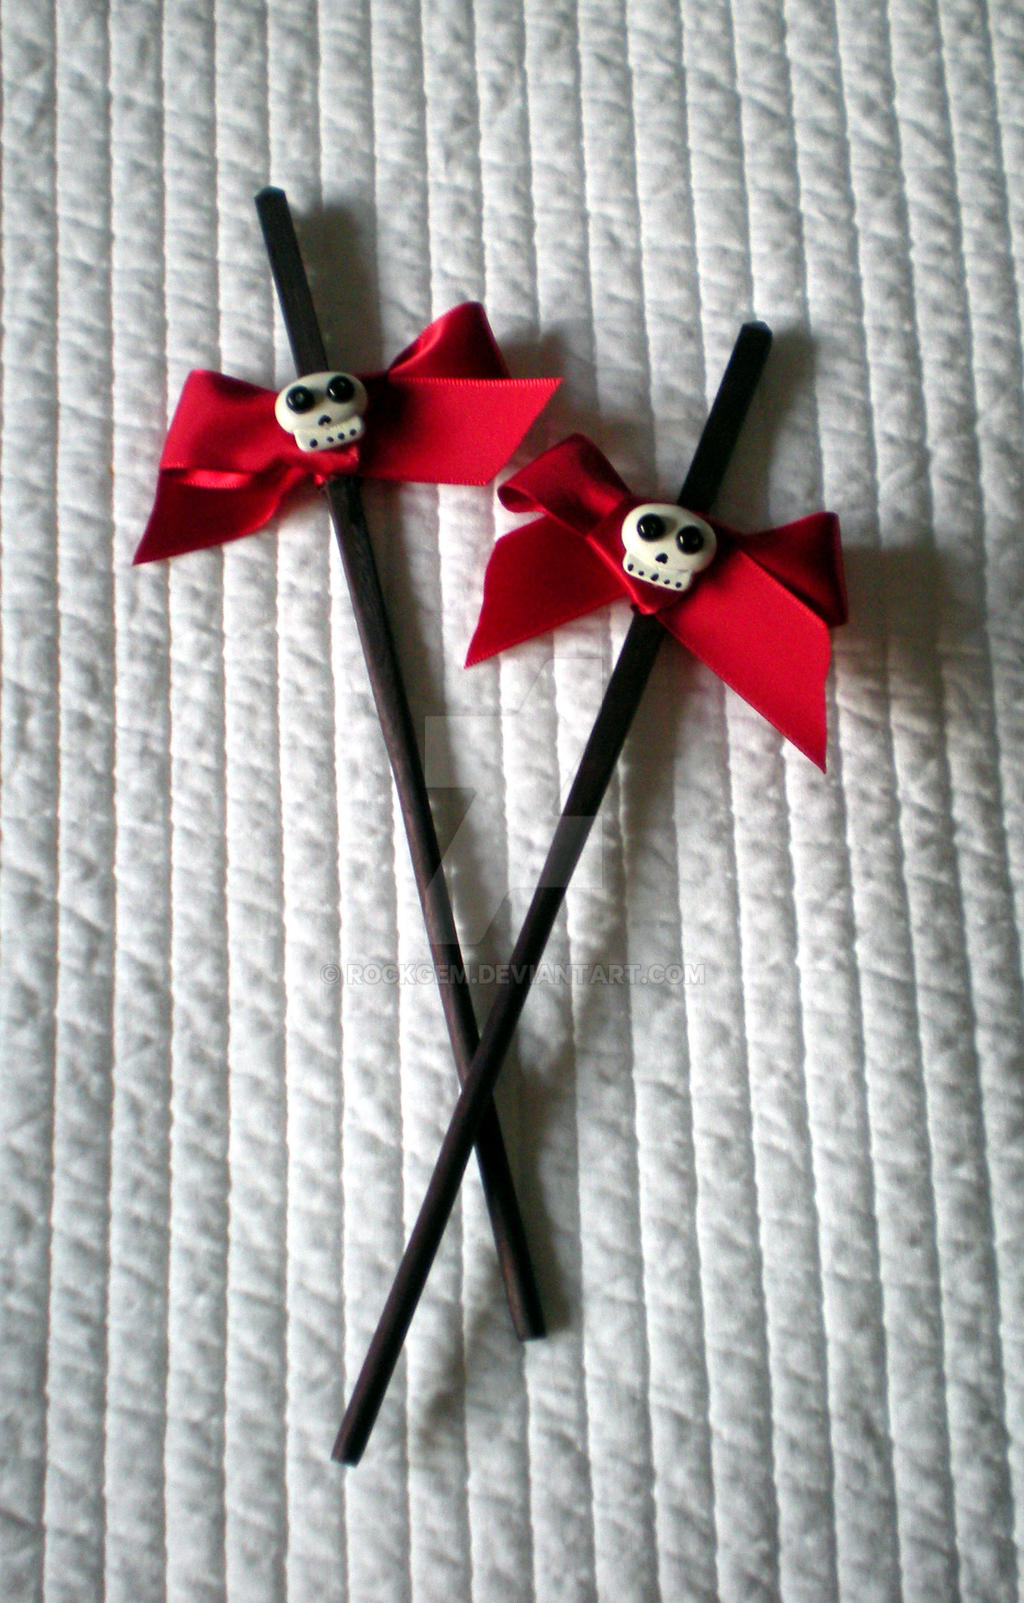 Hair 'Chopsticks' - Red bow and cute skull II by rockgem